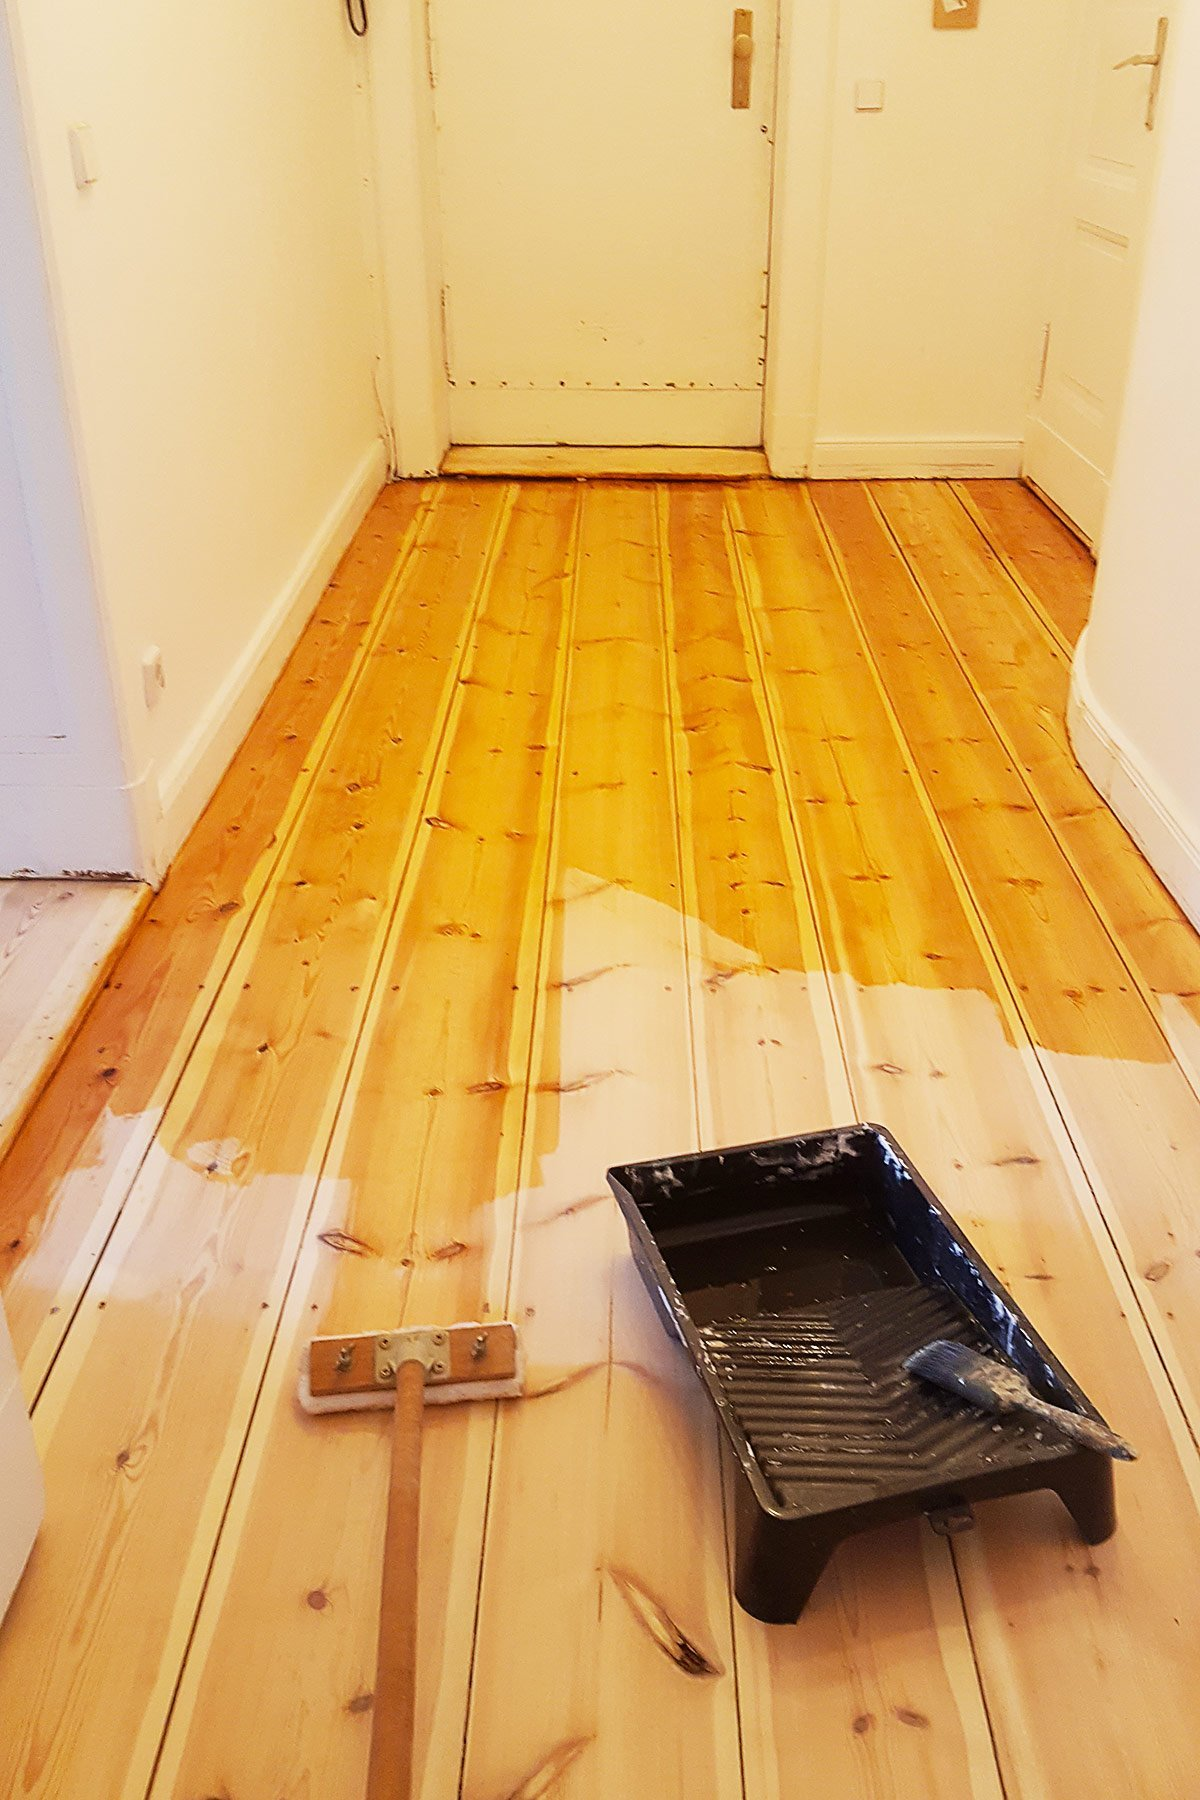 Sanding Floorboards - Oiling | Little House On The Corner